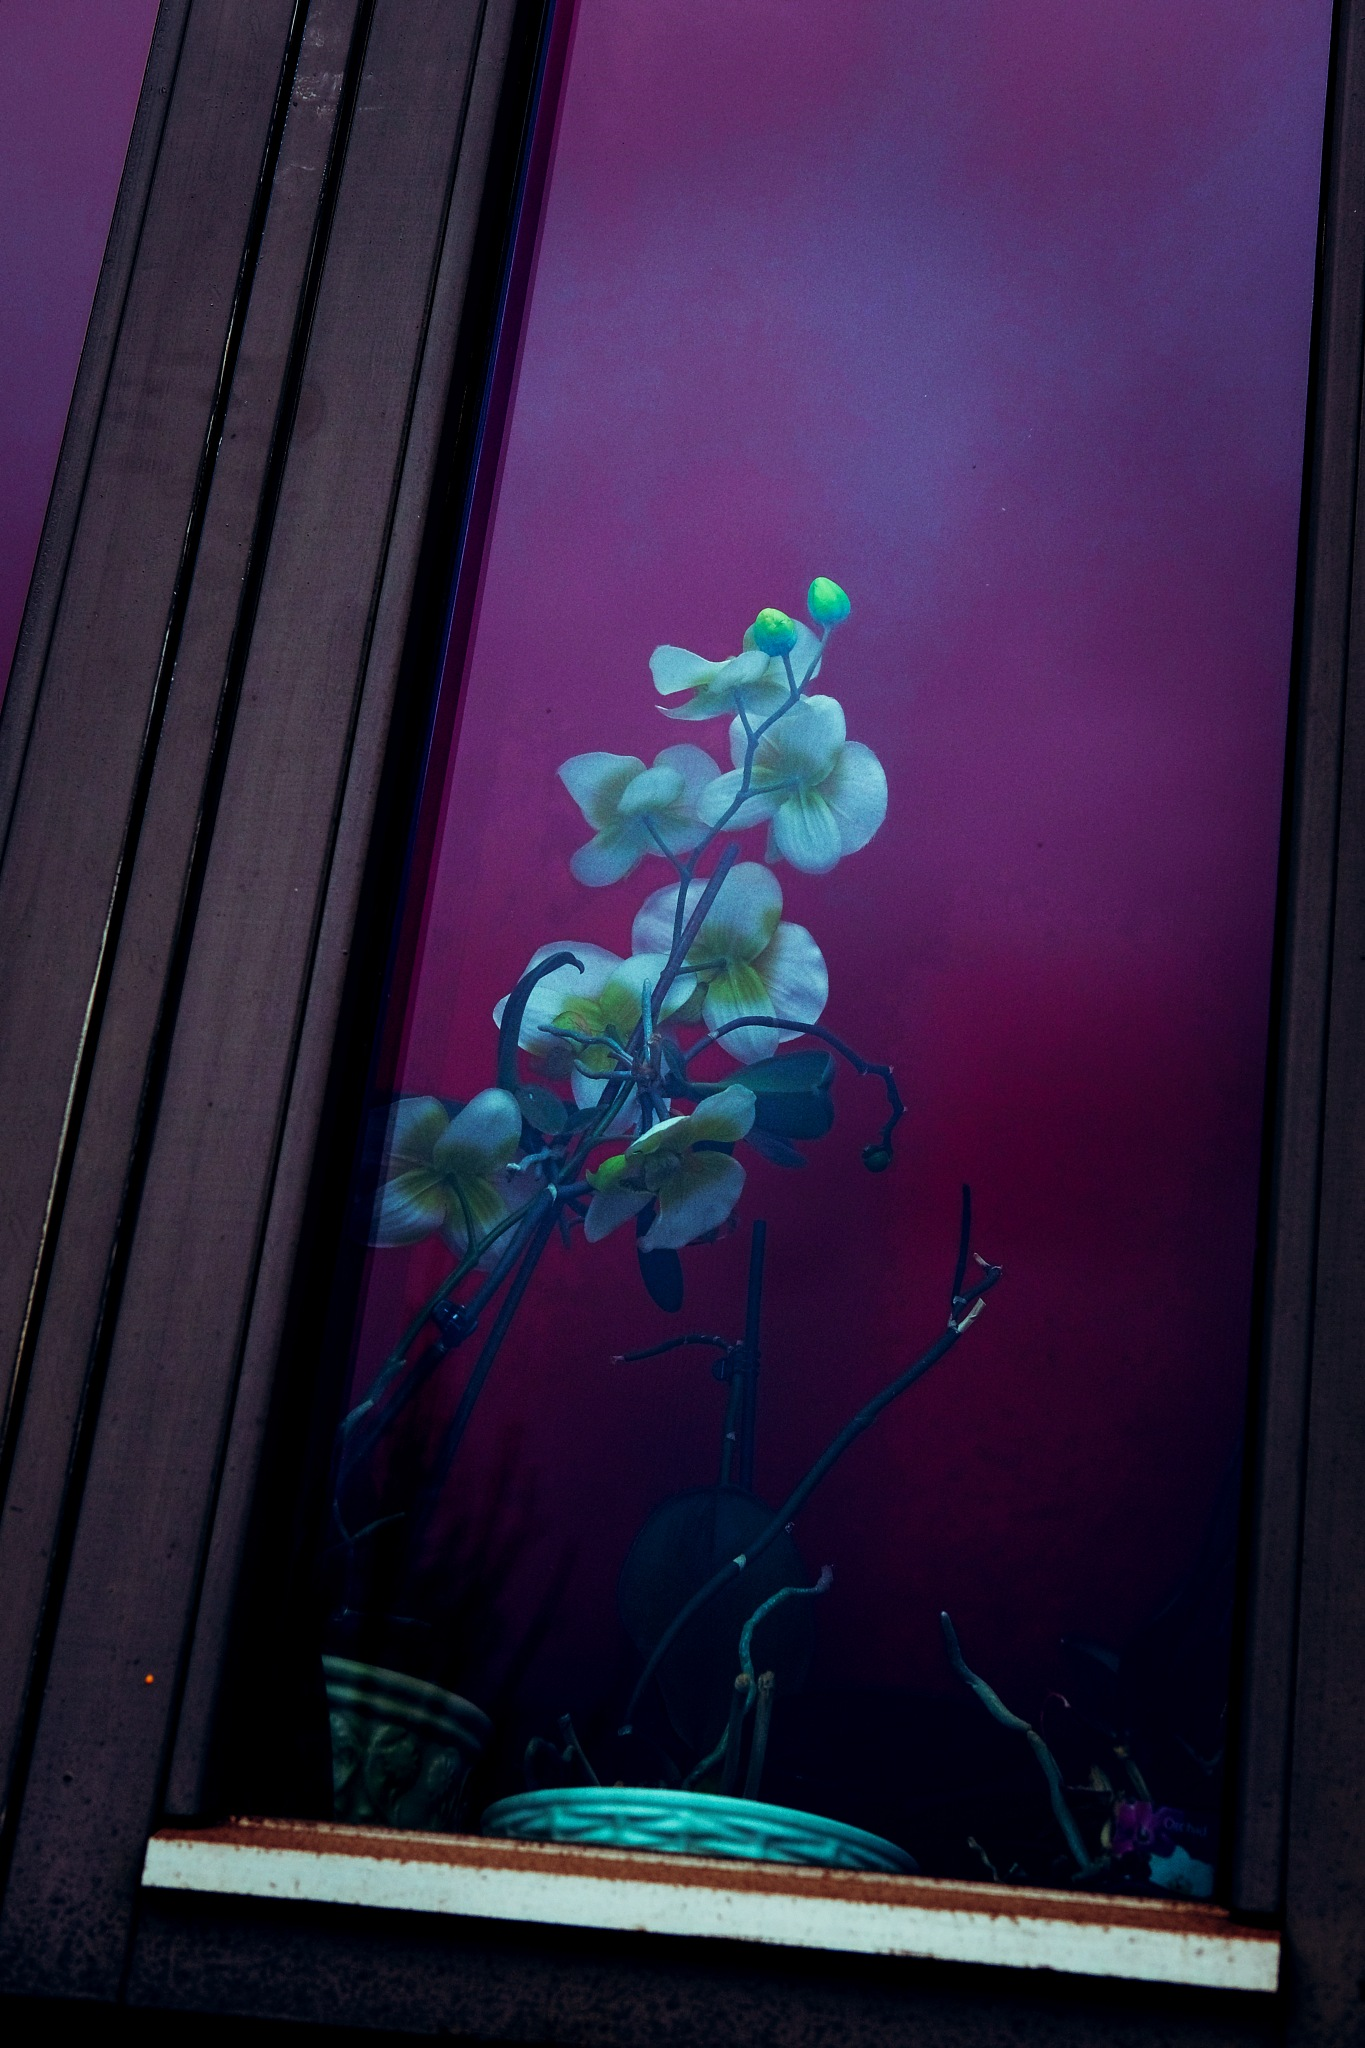 Shy Orchids  in The Window by Goran Jorganovich